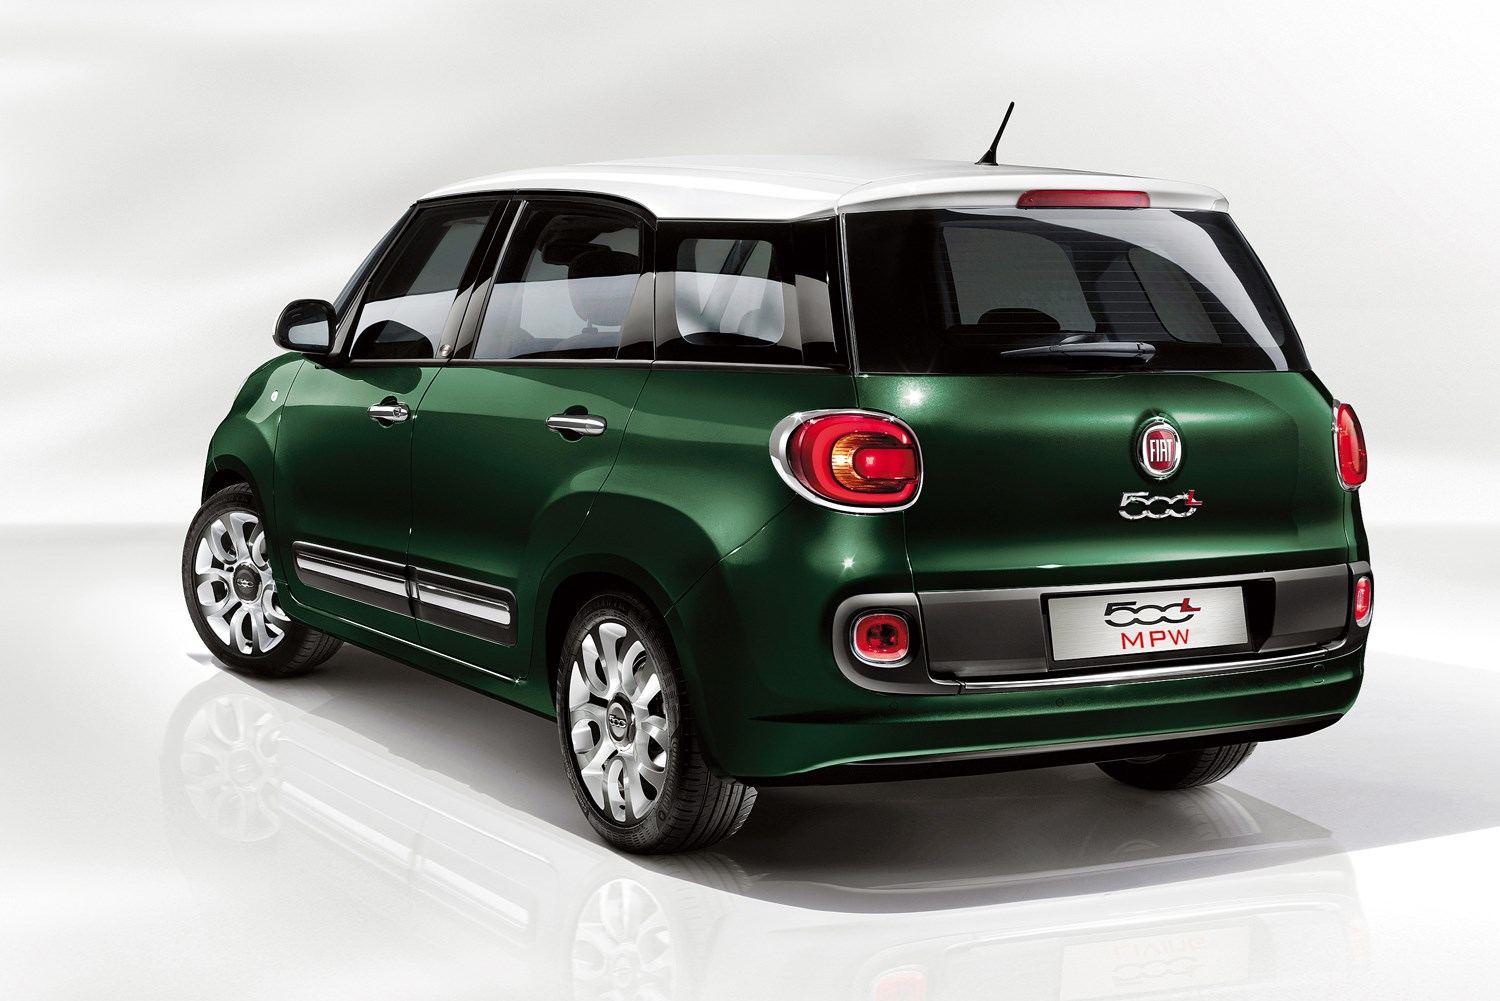 fiat 500l mpw estate review 2013 2017 parkers. Black Bedroom Furniture Sets. Home Design Ideas